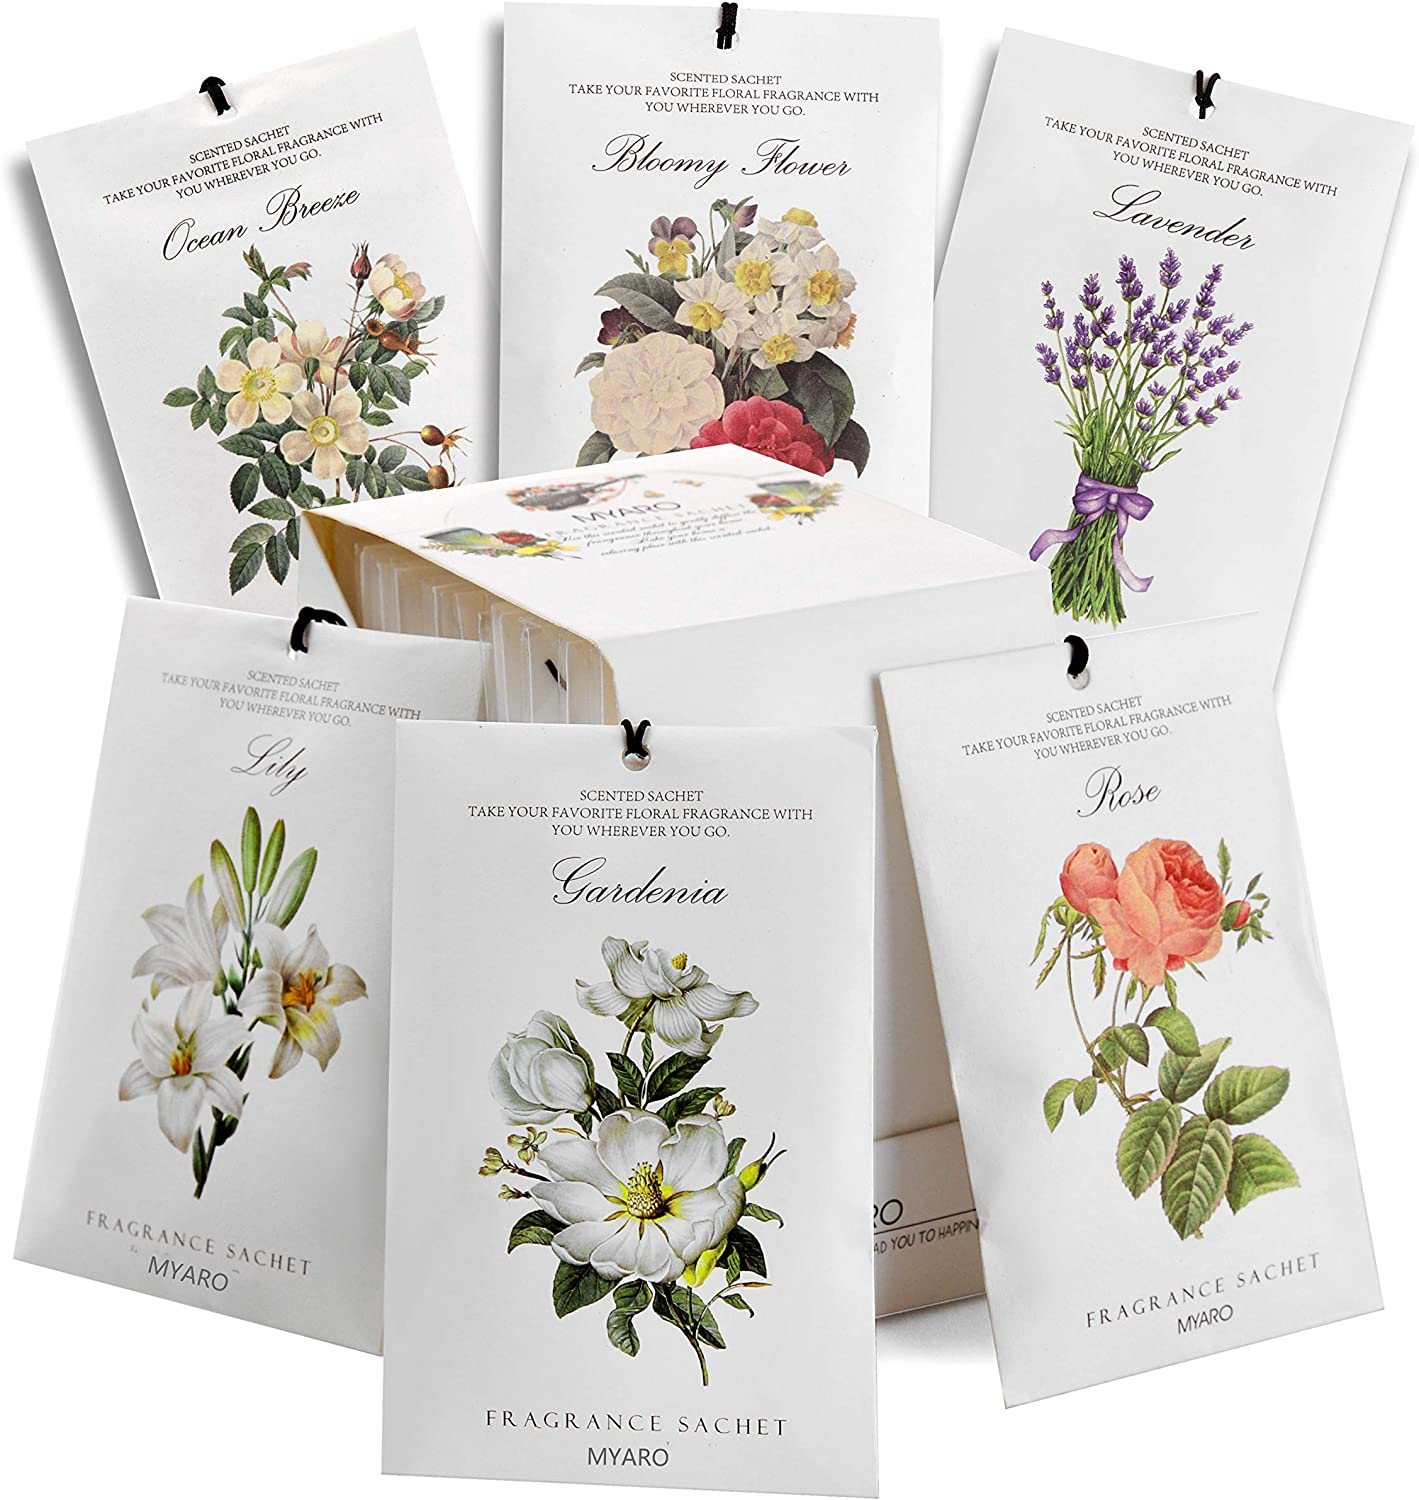 MYARO 12 Packs Scented Sachets for Drawer and Closet, Long-Lasting Sachets Bags Home Fragrance Sachet 6 Scents Option- Lavender, Rose, Jasmine, Ocean, Gardenia, Lily